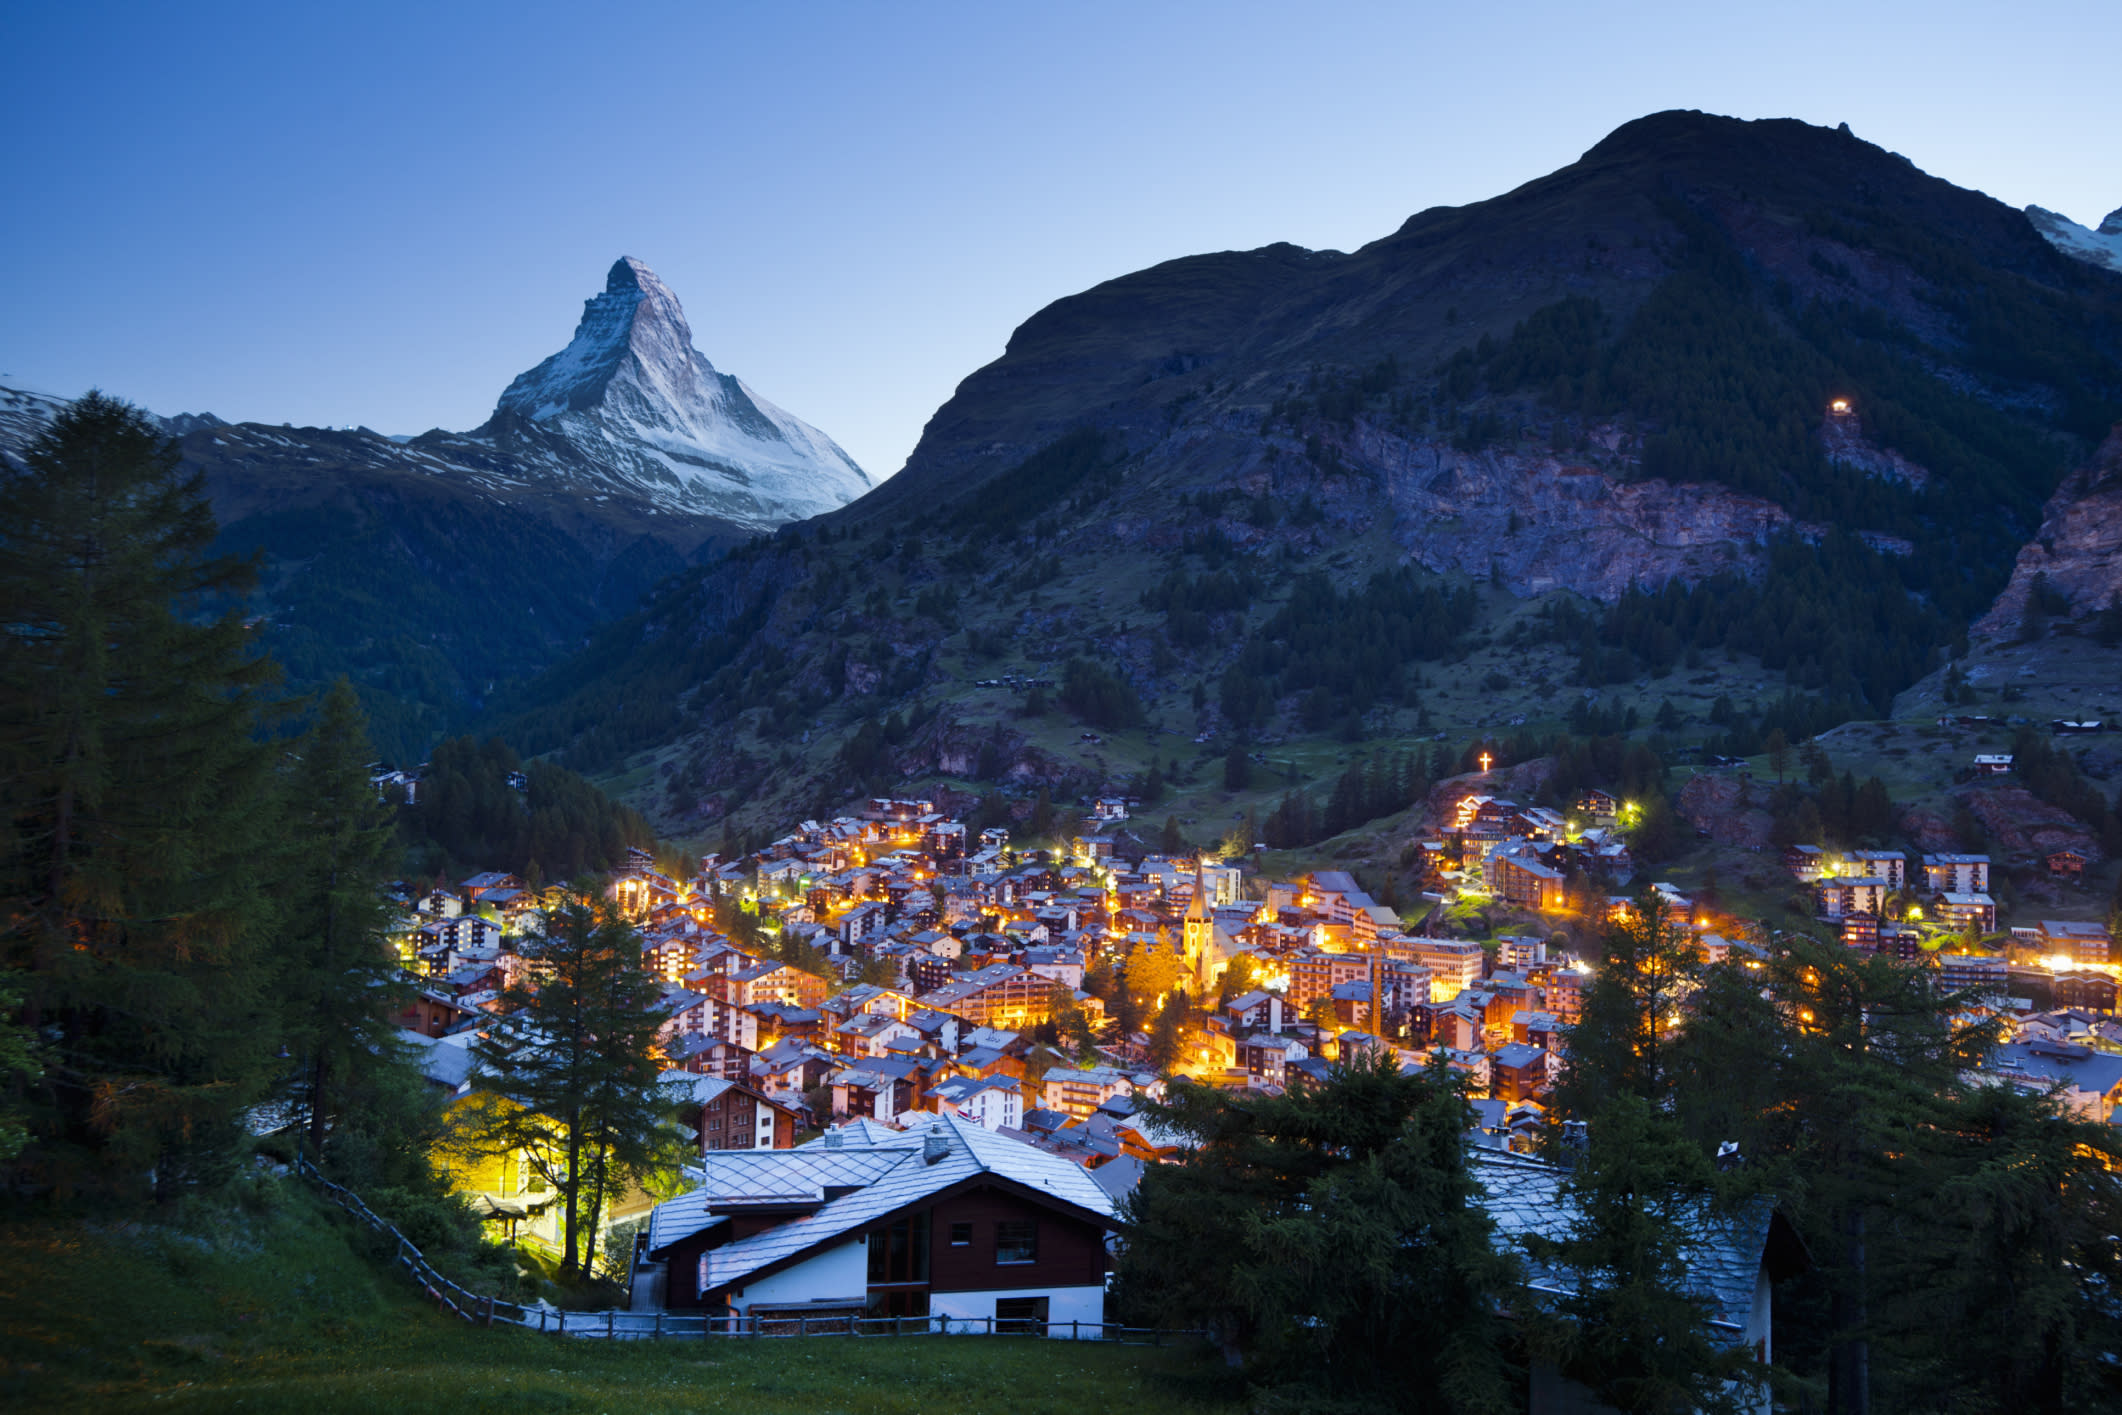 <p>Switzerland has an earnings-related public pension, a mandatory occupational system and voluntary private pensions.</p>  <p>It scored 73.9 out of 100. It fared well for integrity and reasonably well for incomes in retirement. The researchers just questioned its sustainability.</p>